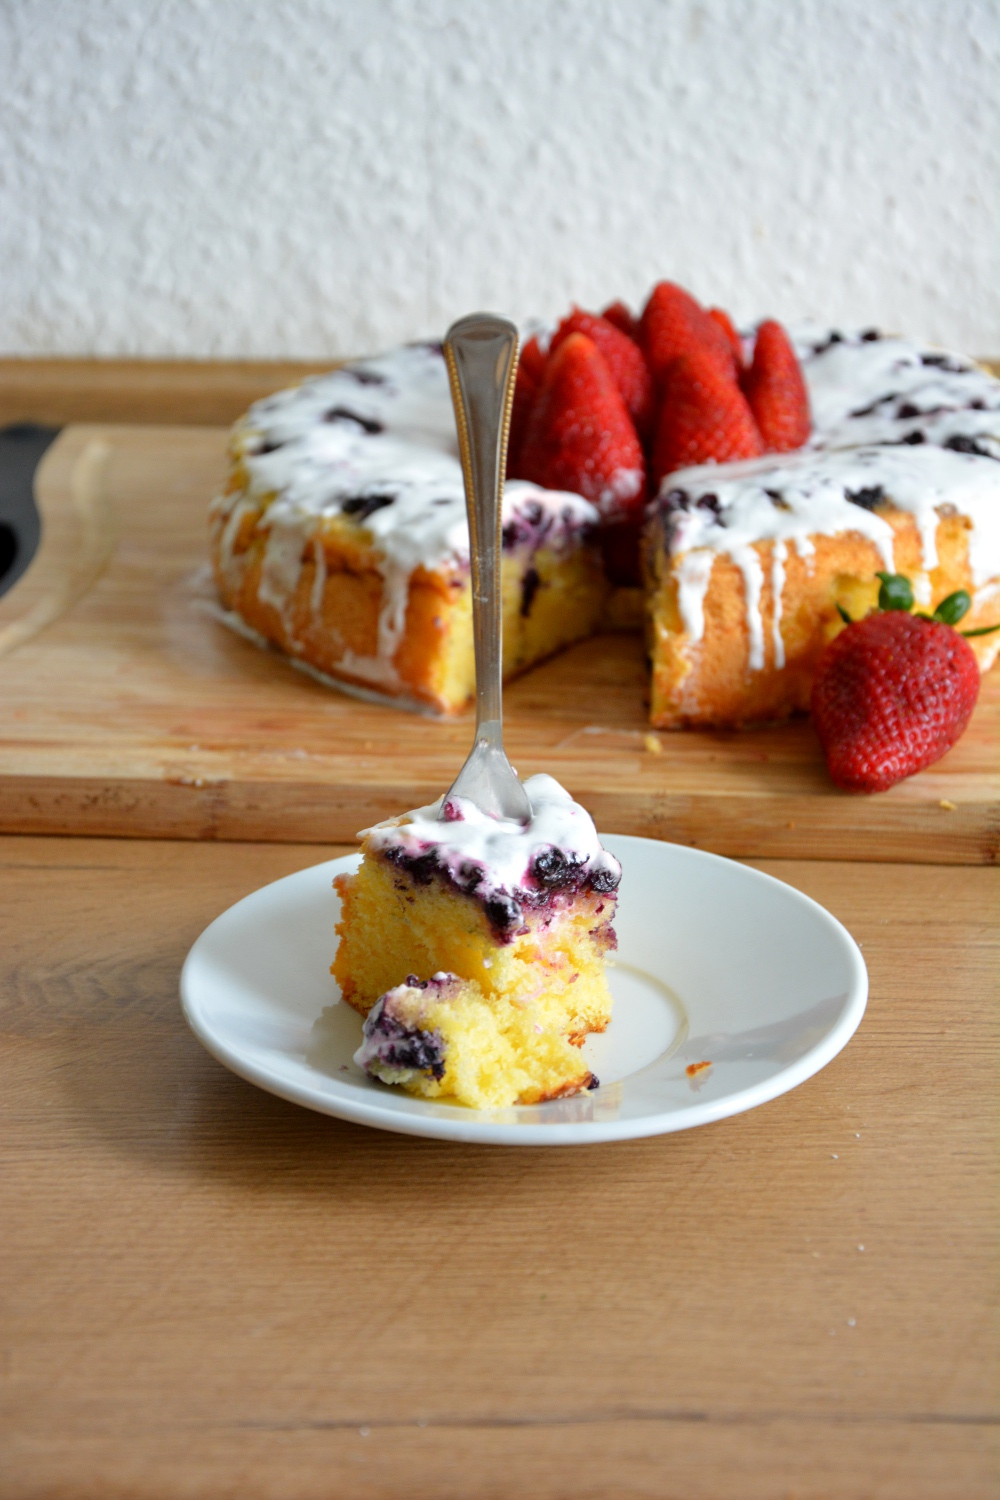 Lemon And Blueberry Cloud Cake3